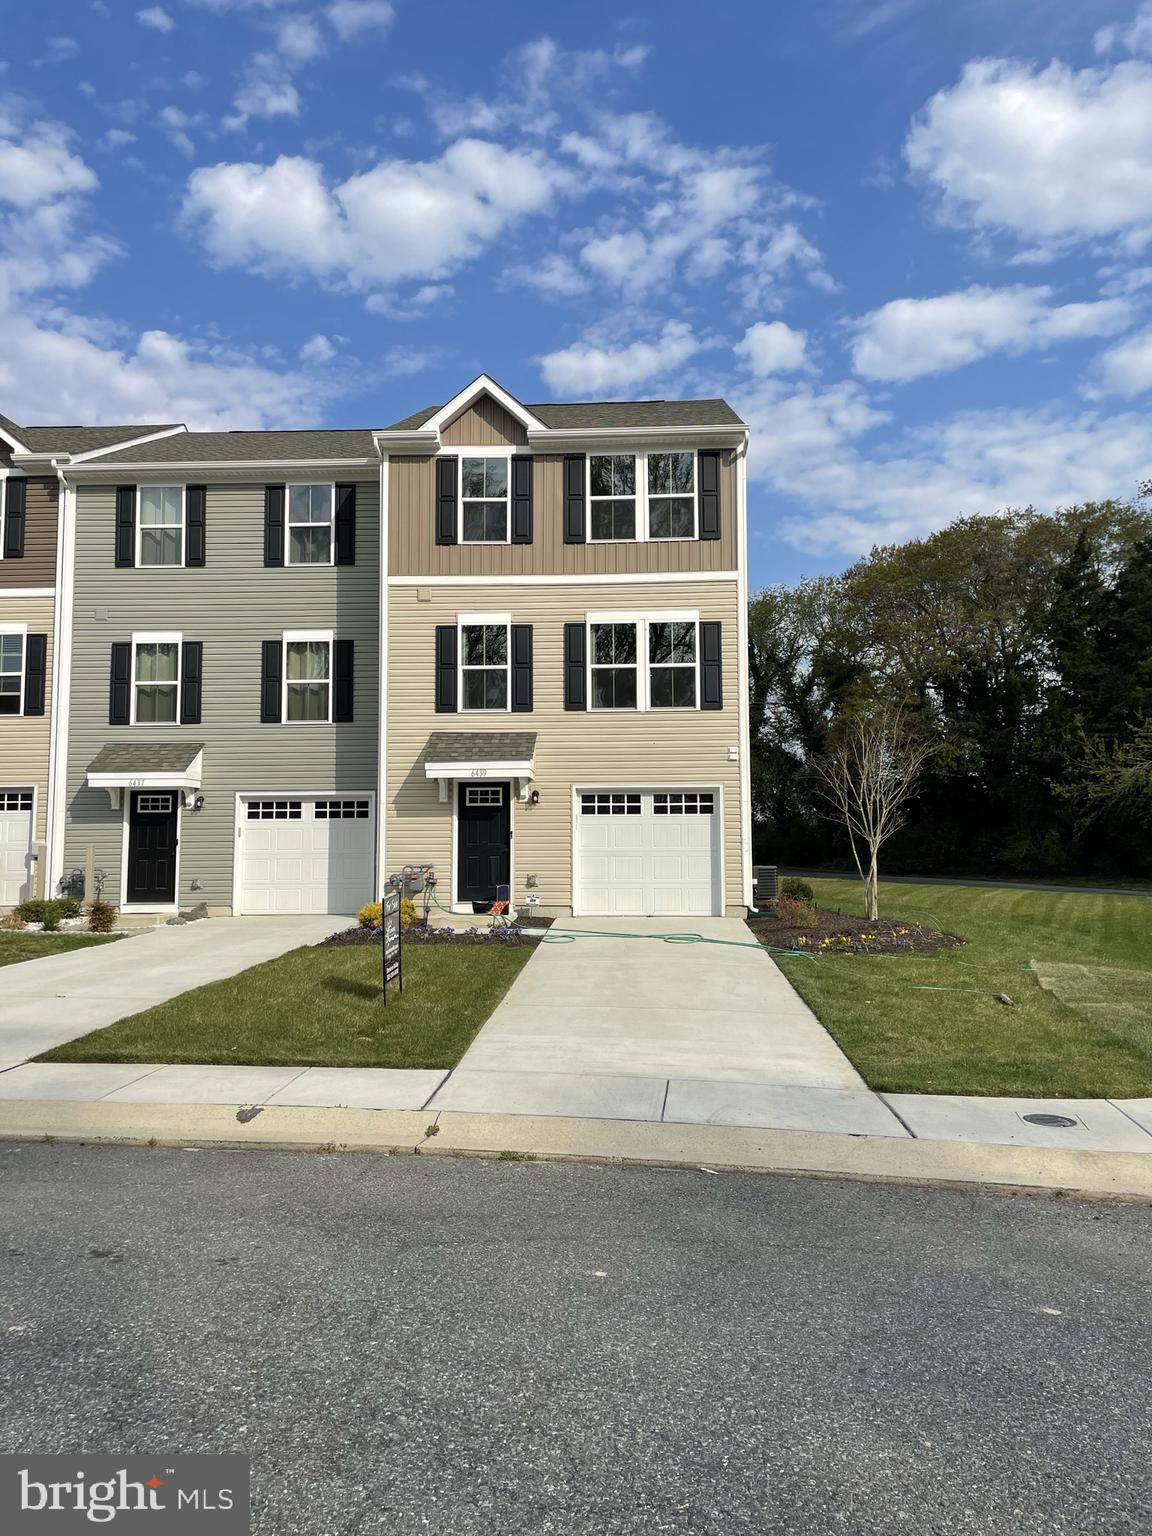 Welcome to Brookstone Trace in Milford, De! For less than the cost of rent, For less than the cost o